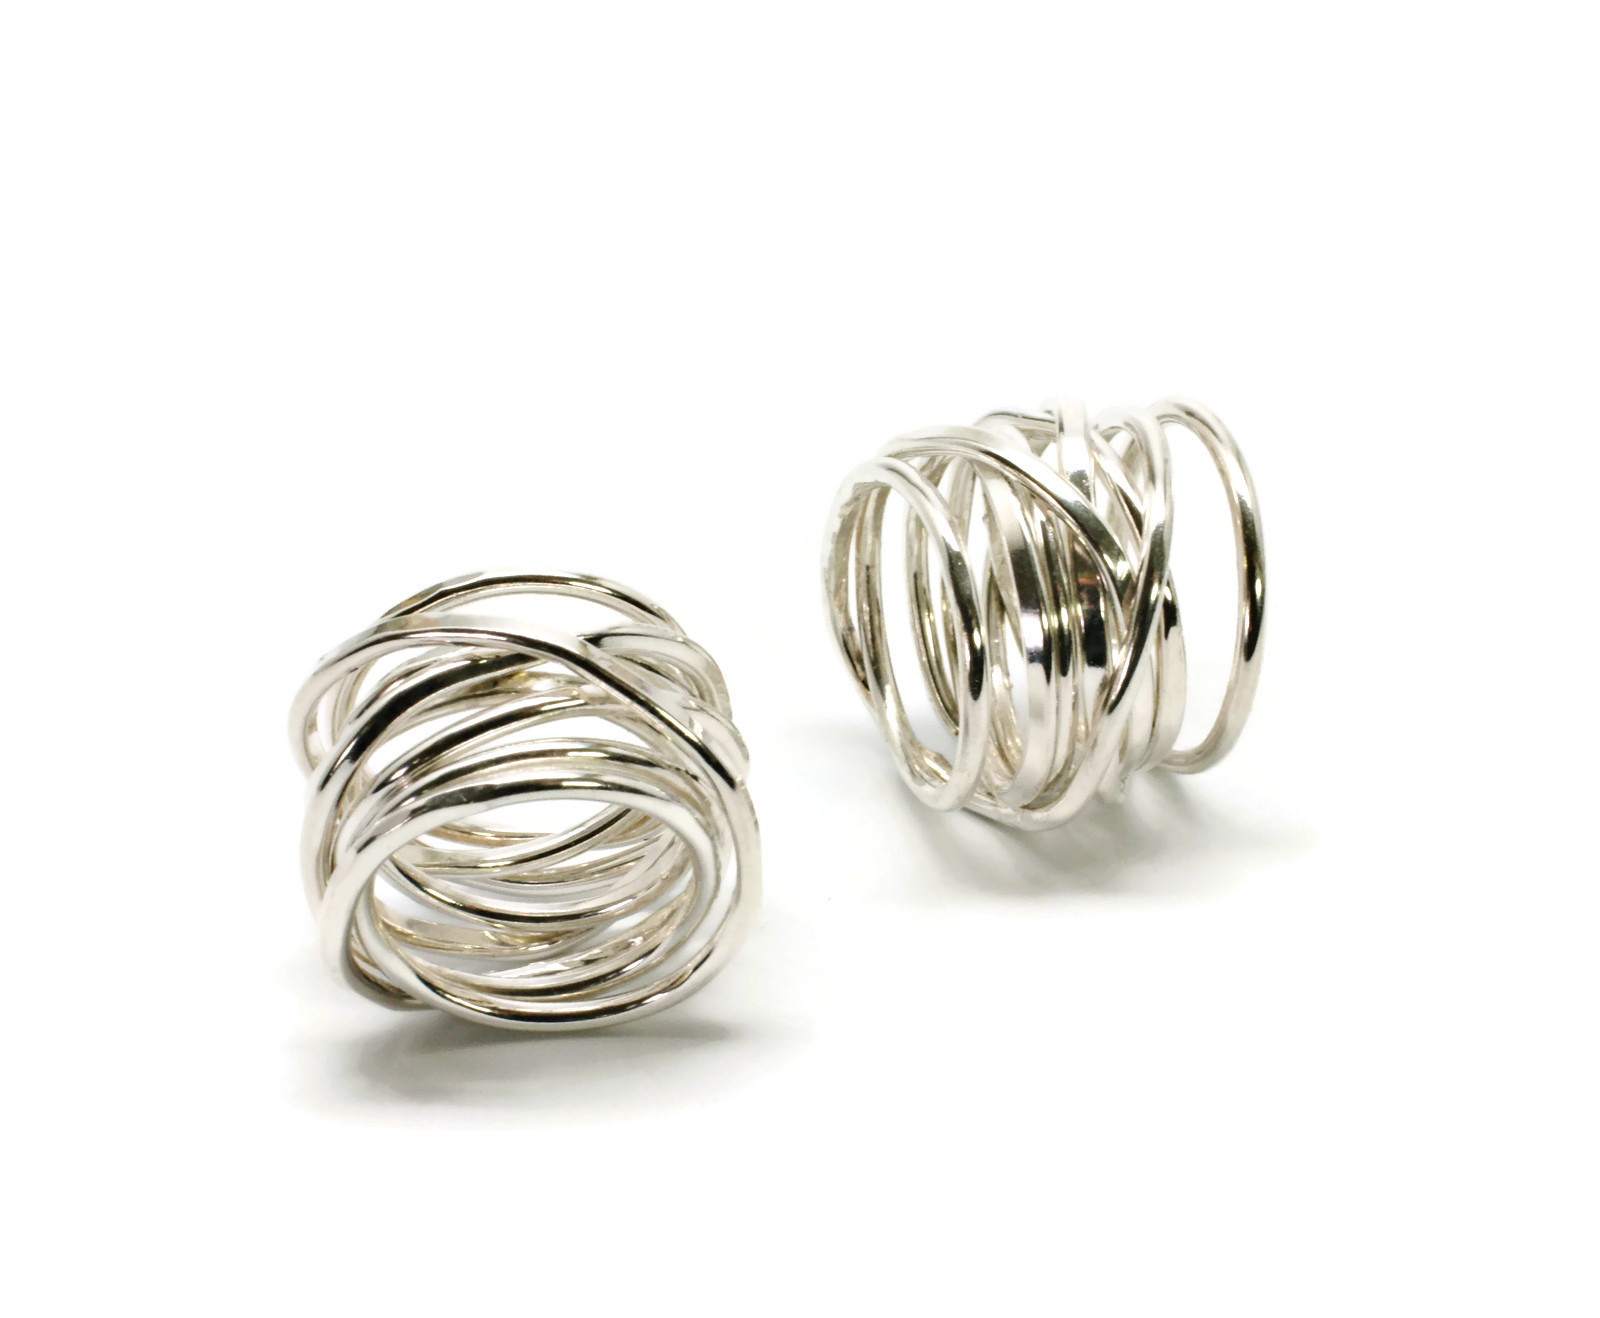 Entwined Sterling Silver Wire Ring – Kathleen Dennison